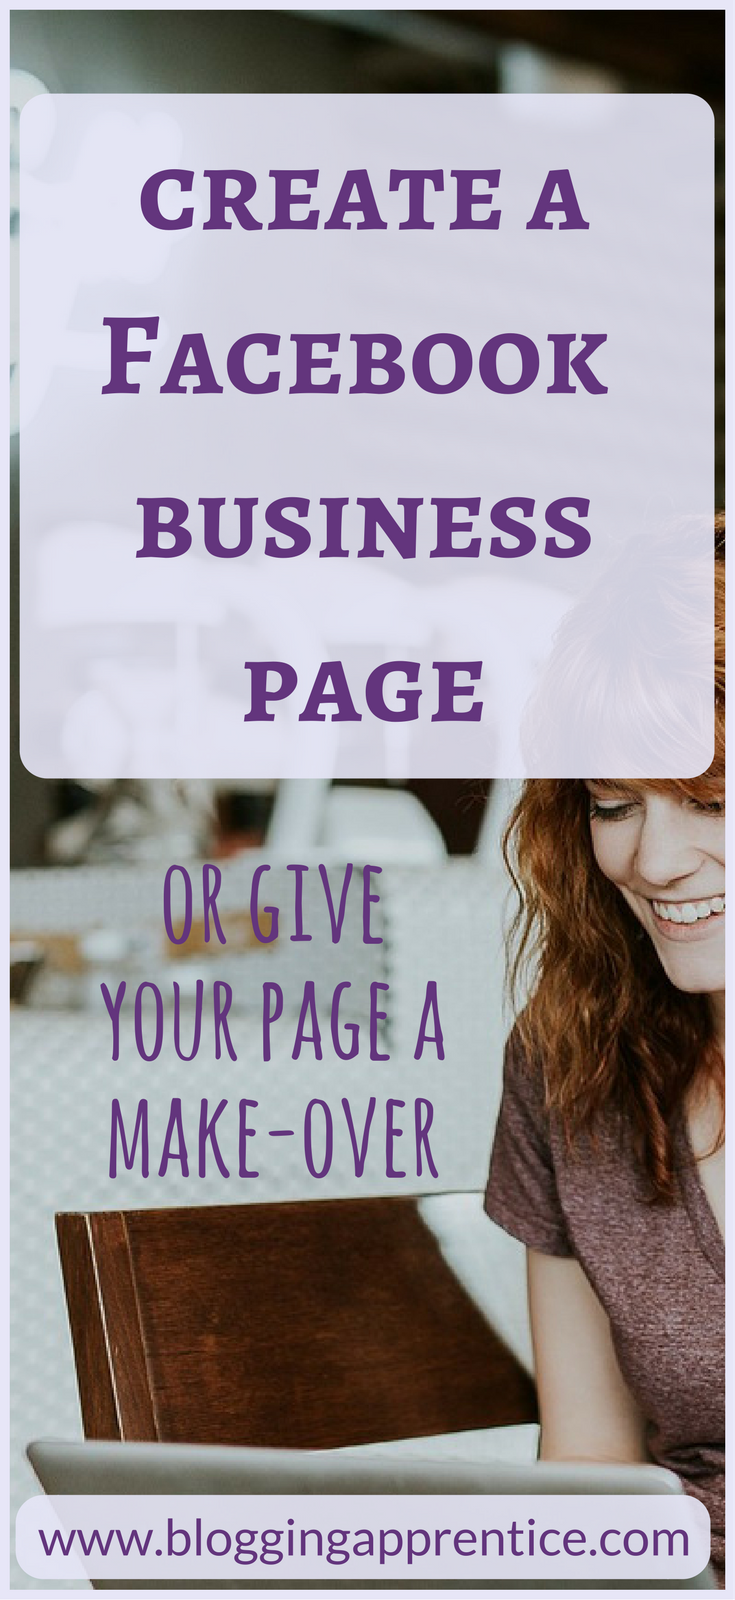 Create a Facebook business page - free webinar at www.bloggingapprentice.com